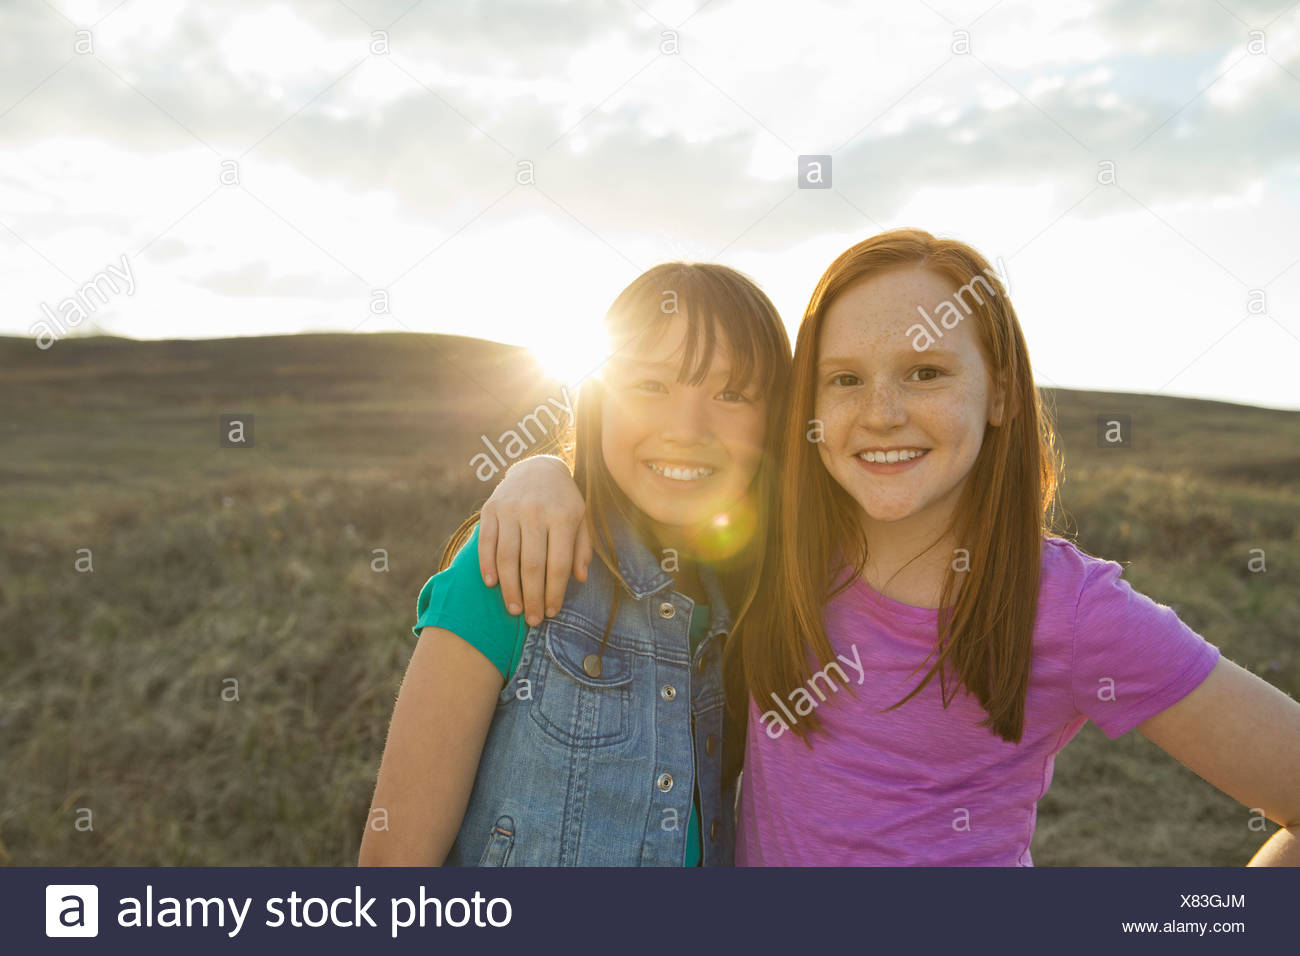 Portrait of girls with arms around each other - Stock Image